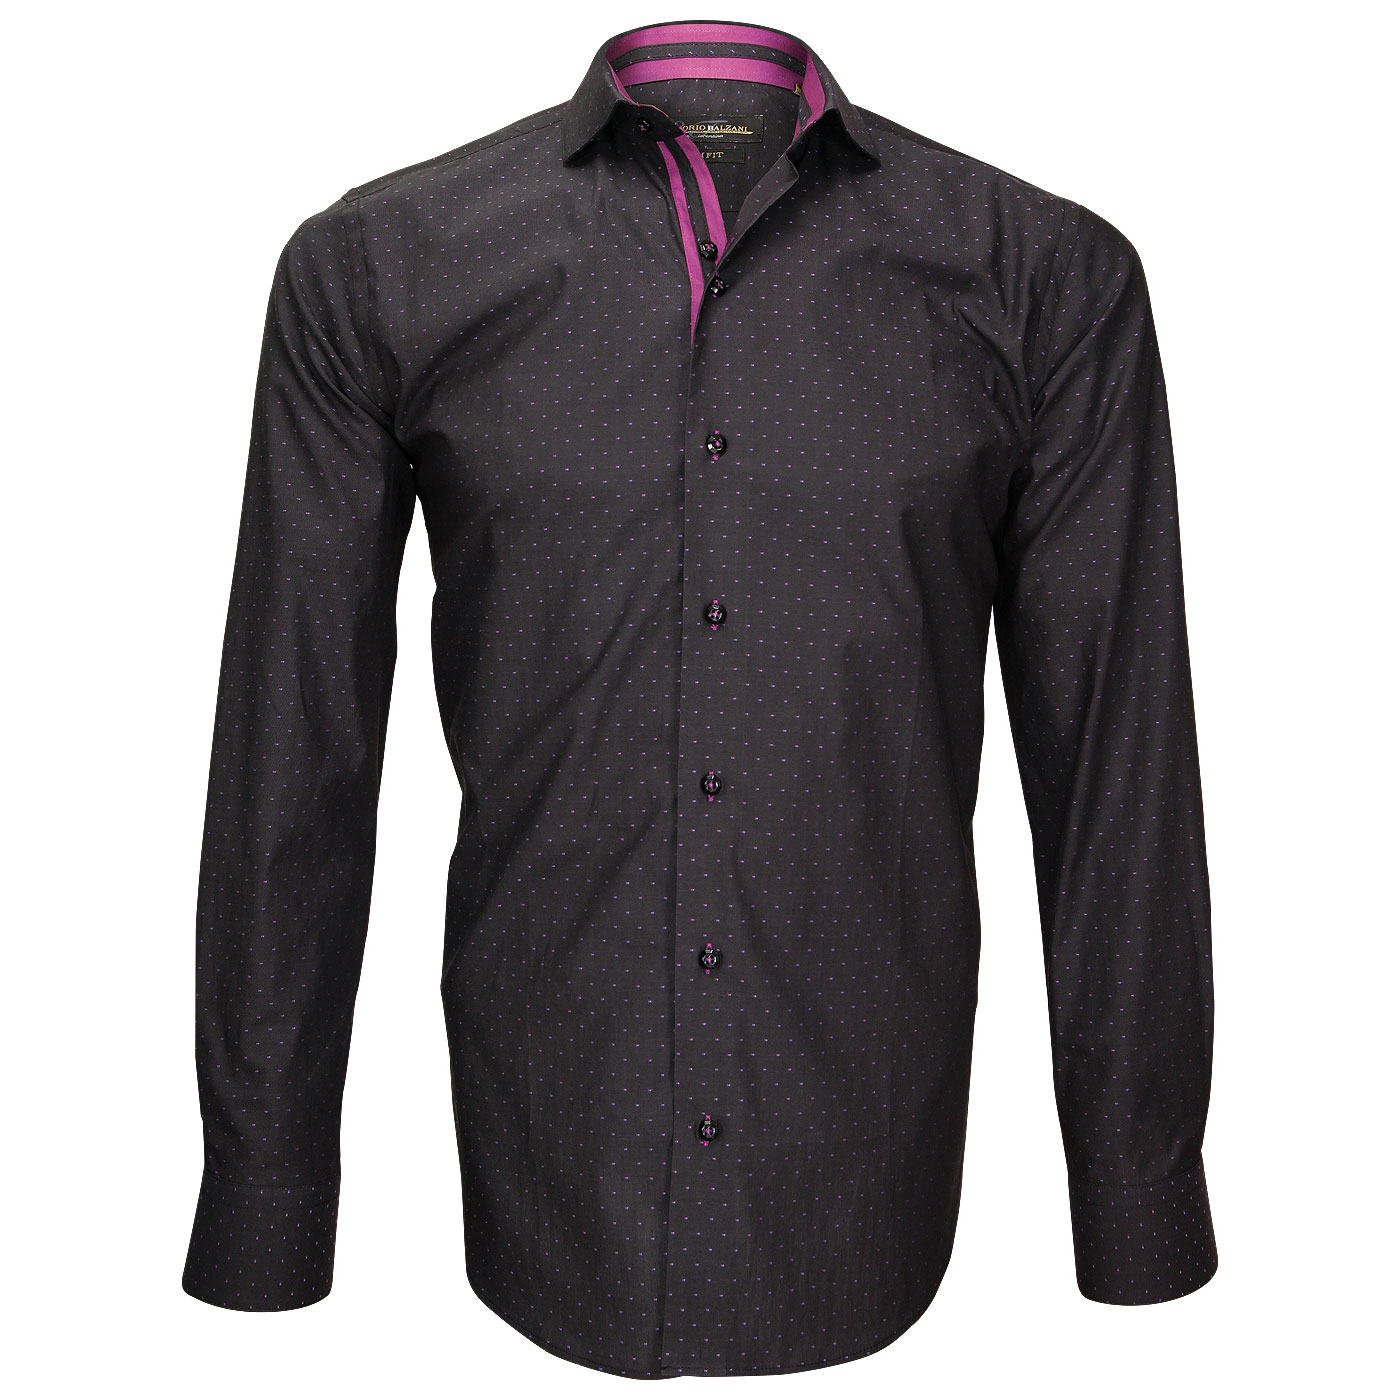 Webmenshirts.com: the slim fit shirt specialist!